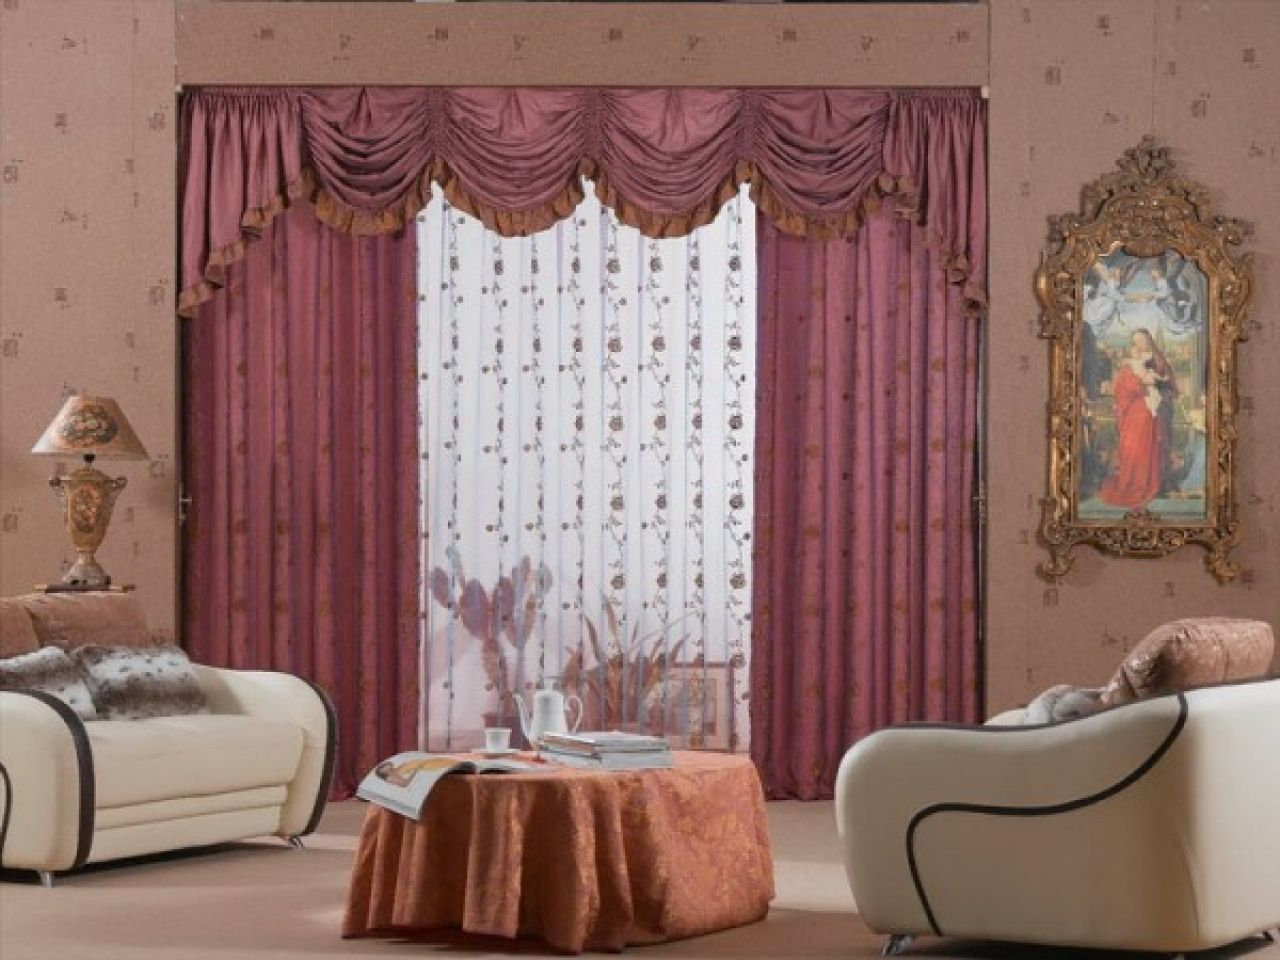 Living Room Curtain Designs Magnificent Pinpavlina Dimitrova On Пердета И Щори  Pinterest Review